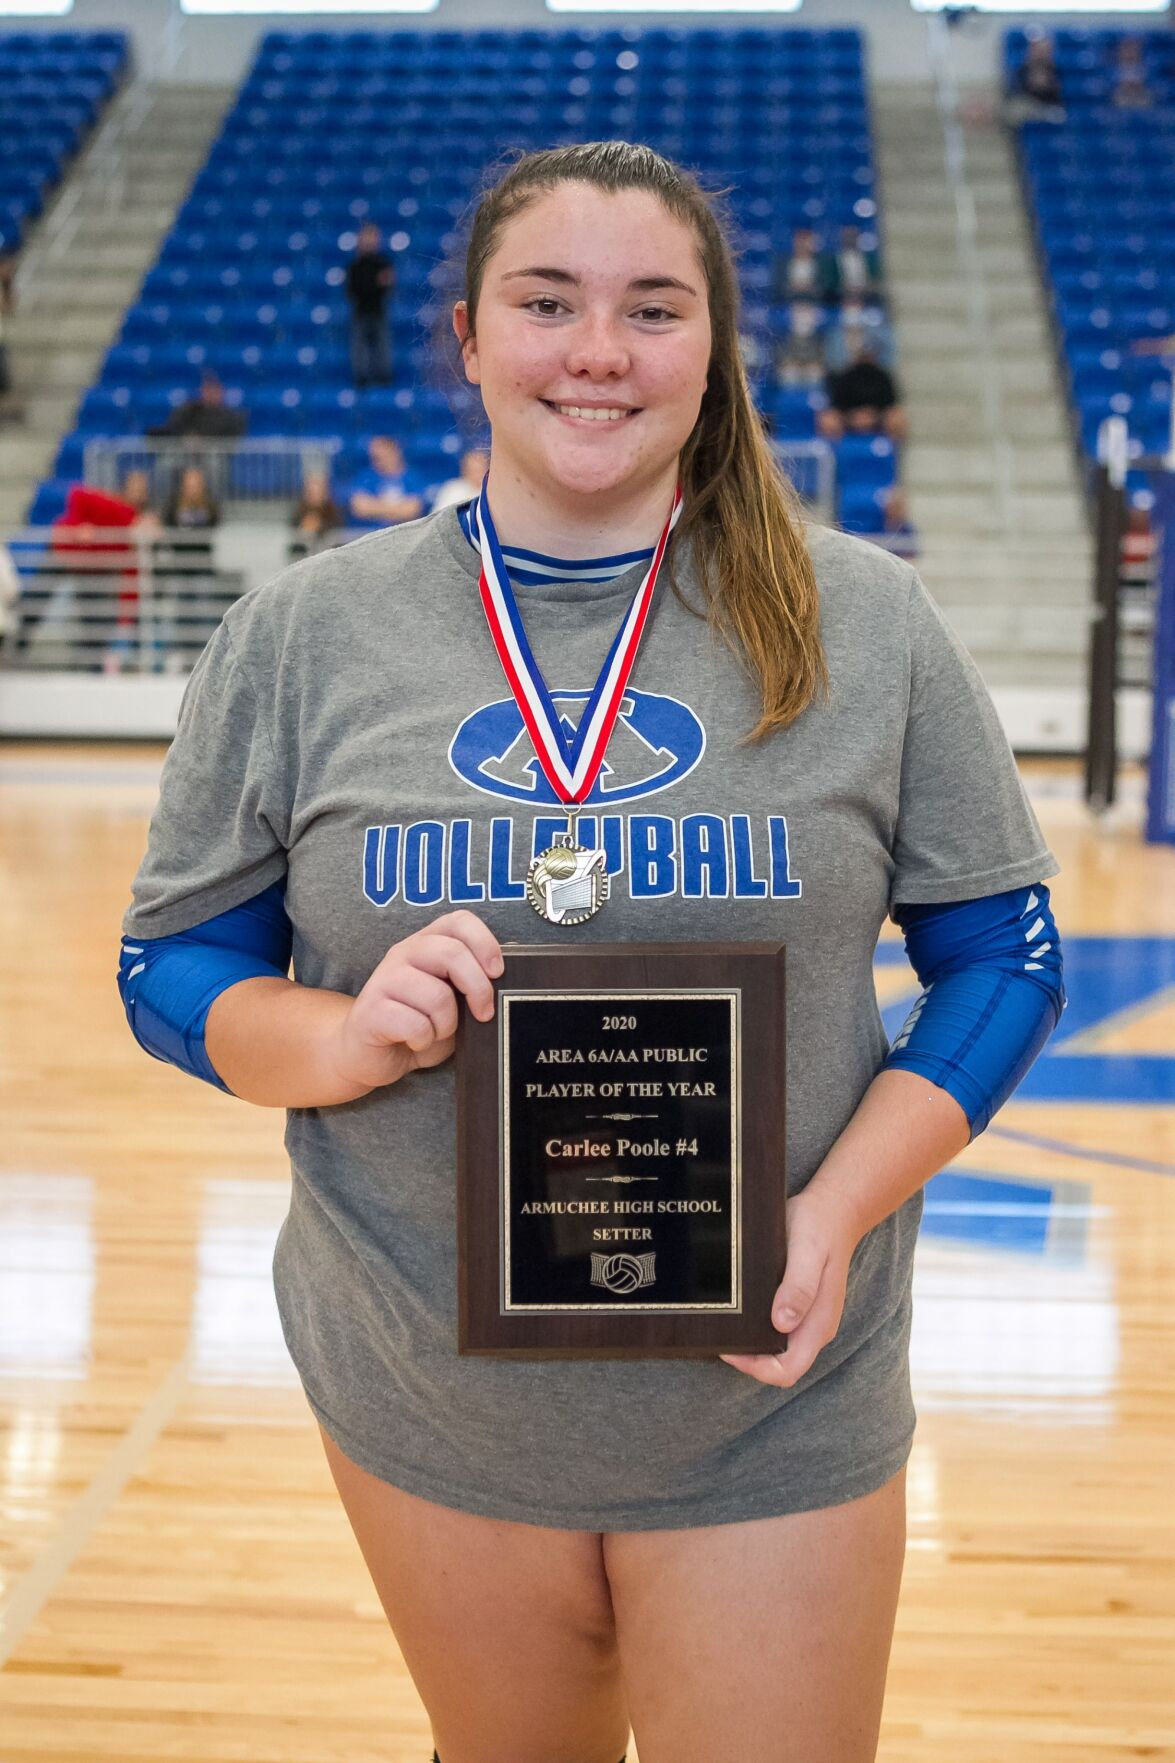 Region player of the year - Carlee Poole